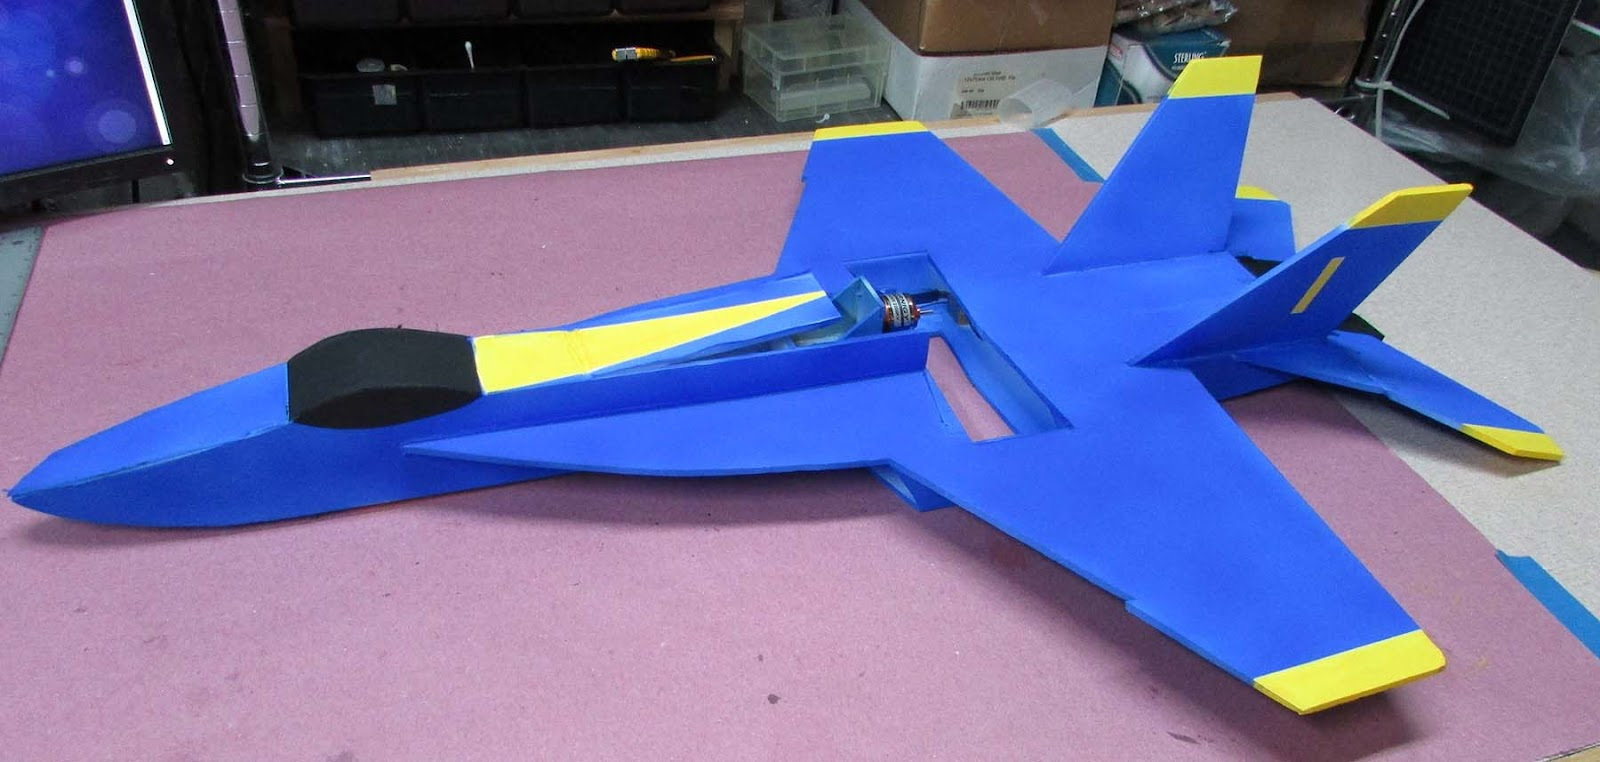 Build F 18 Super Hornet In Ft Style Flite Test F18 Jet Engine Diagram V2 Statistics Bigger Motor Esc Battery Material 2 Sheets Ross Foam Core Walmart Weight 308g After Paint 1300 Mah 40c114g